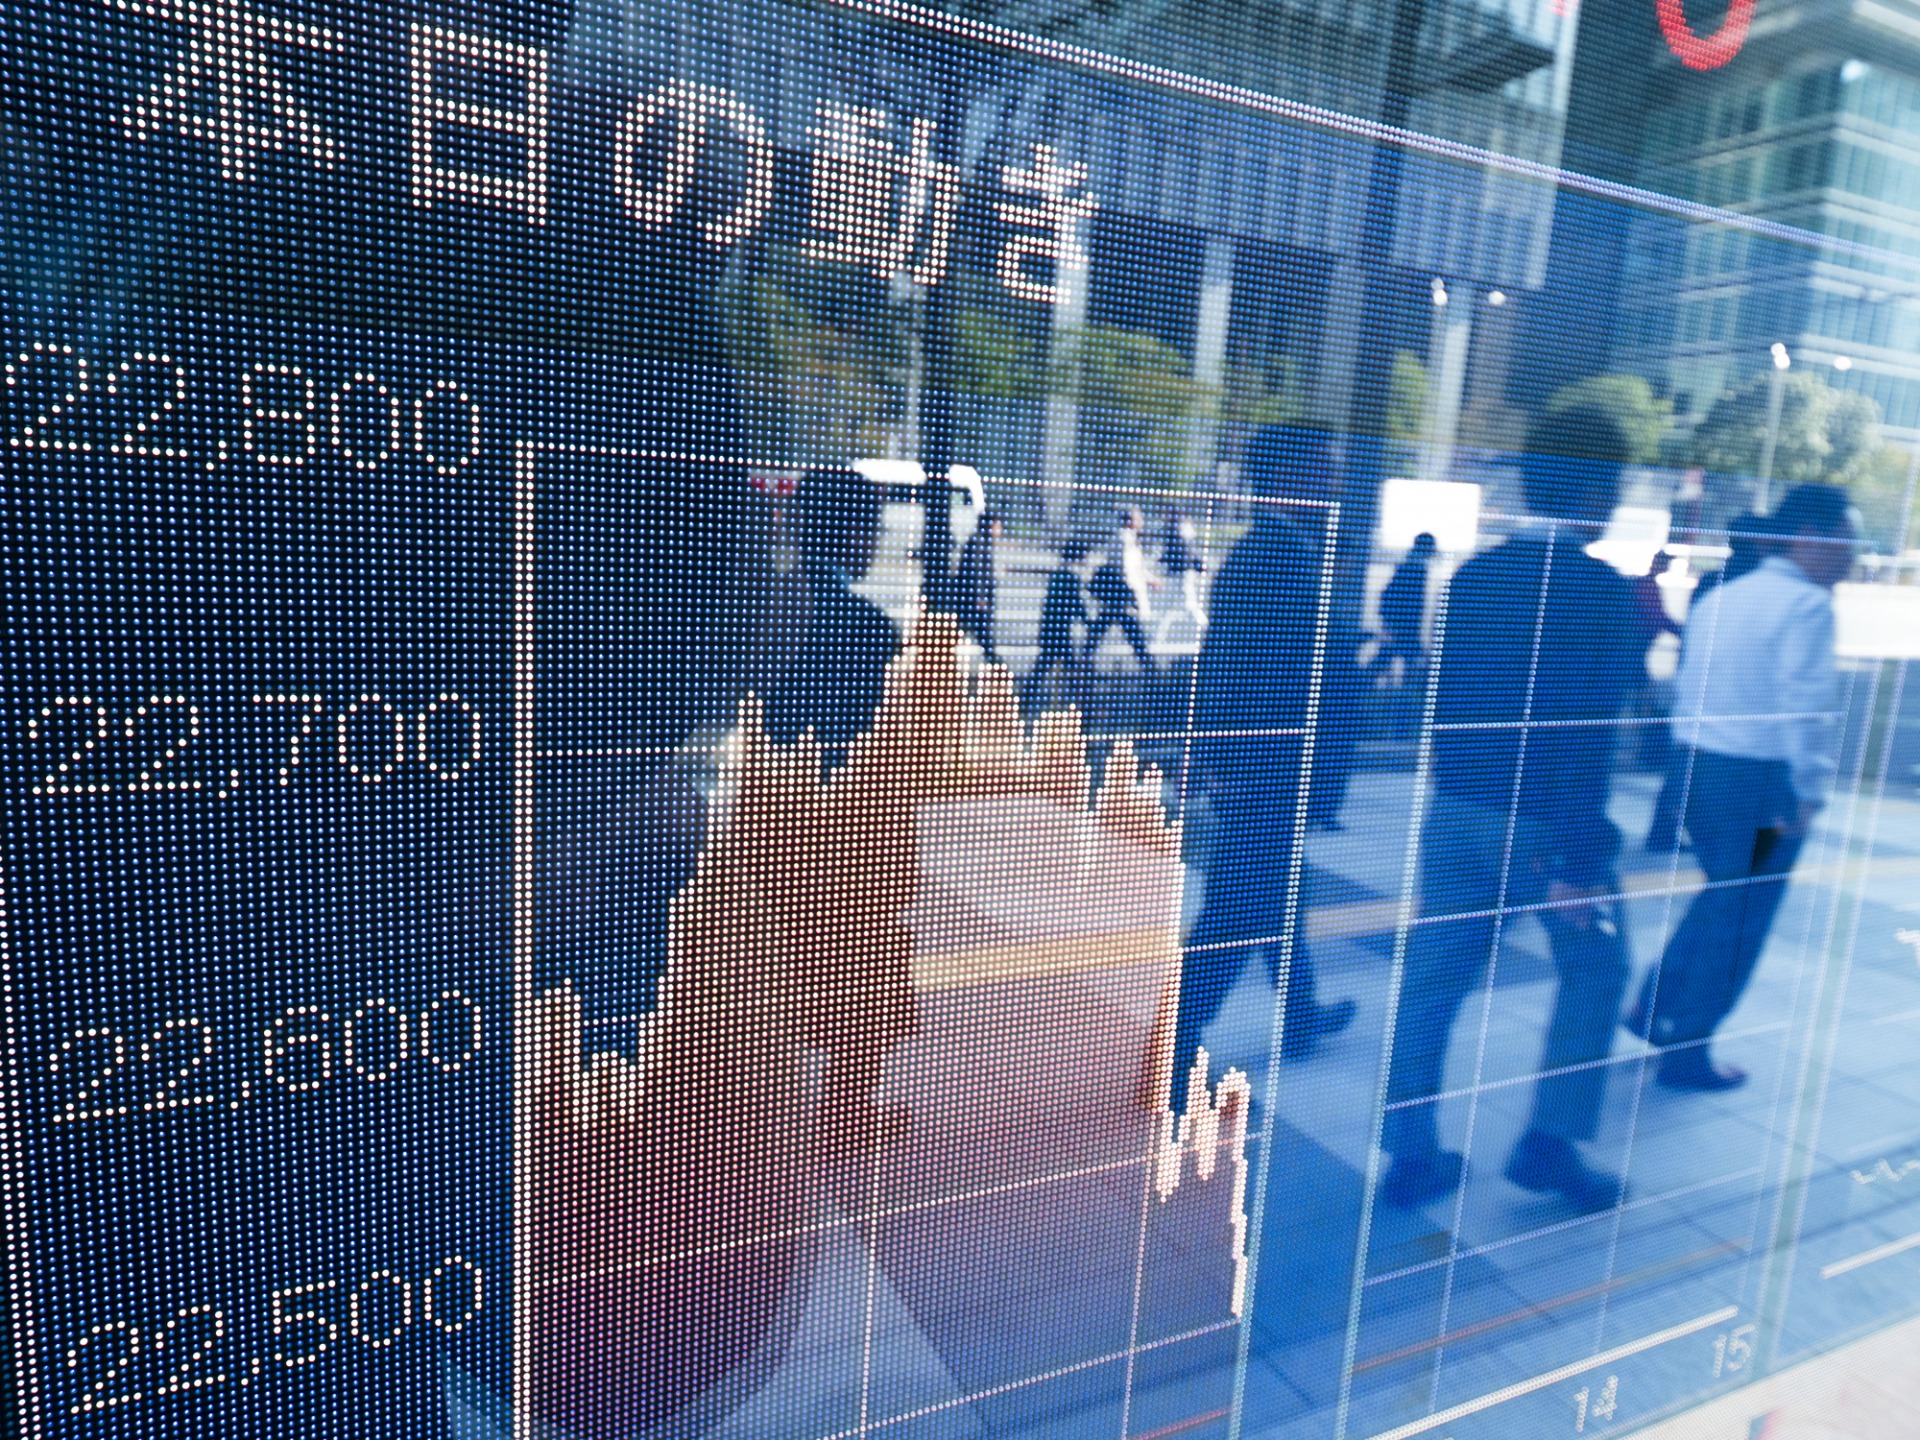 Foreign Stock Funds Boosted by One of the Largest Launches Ever